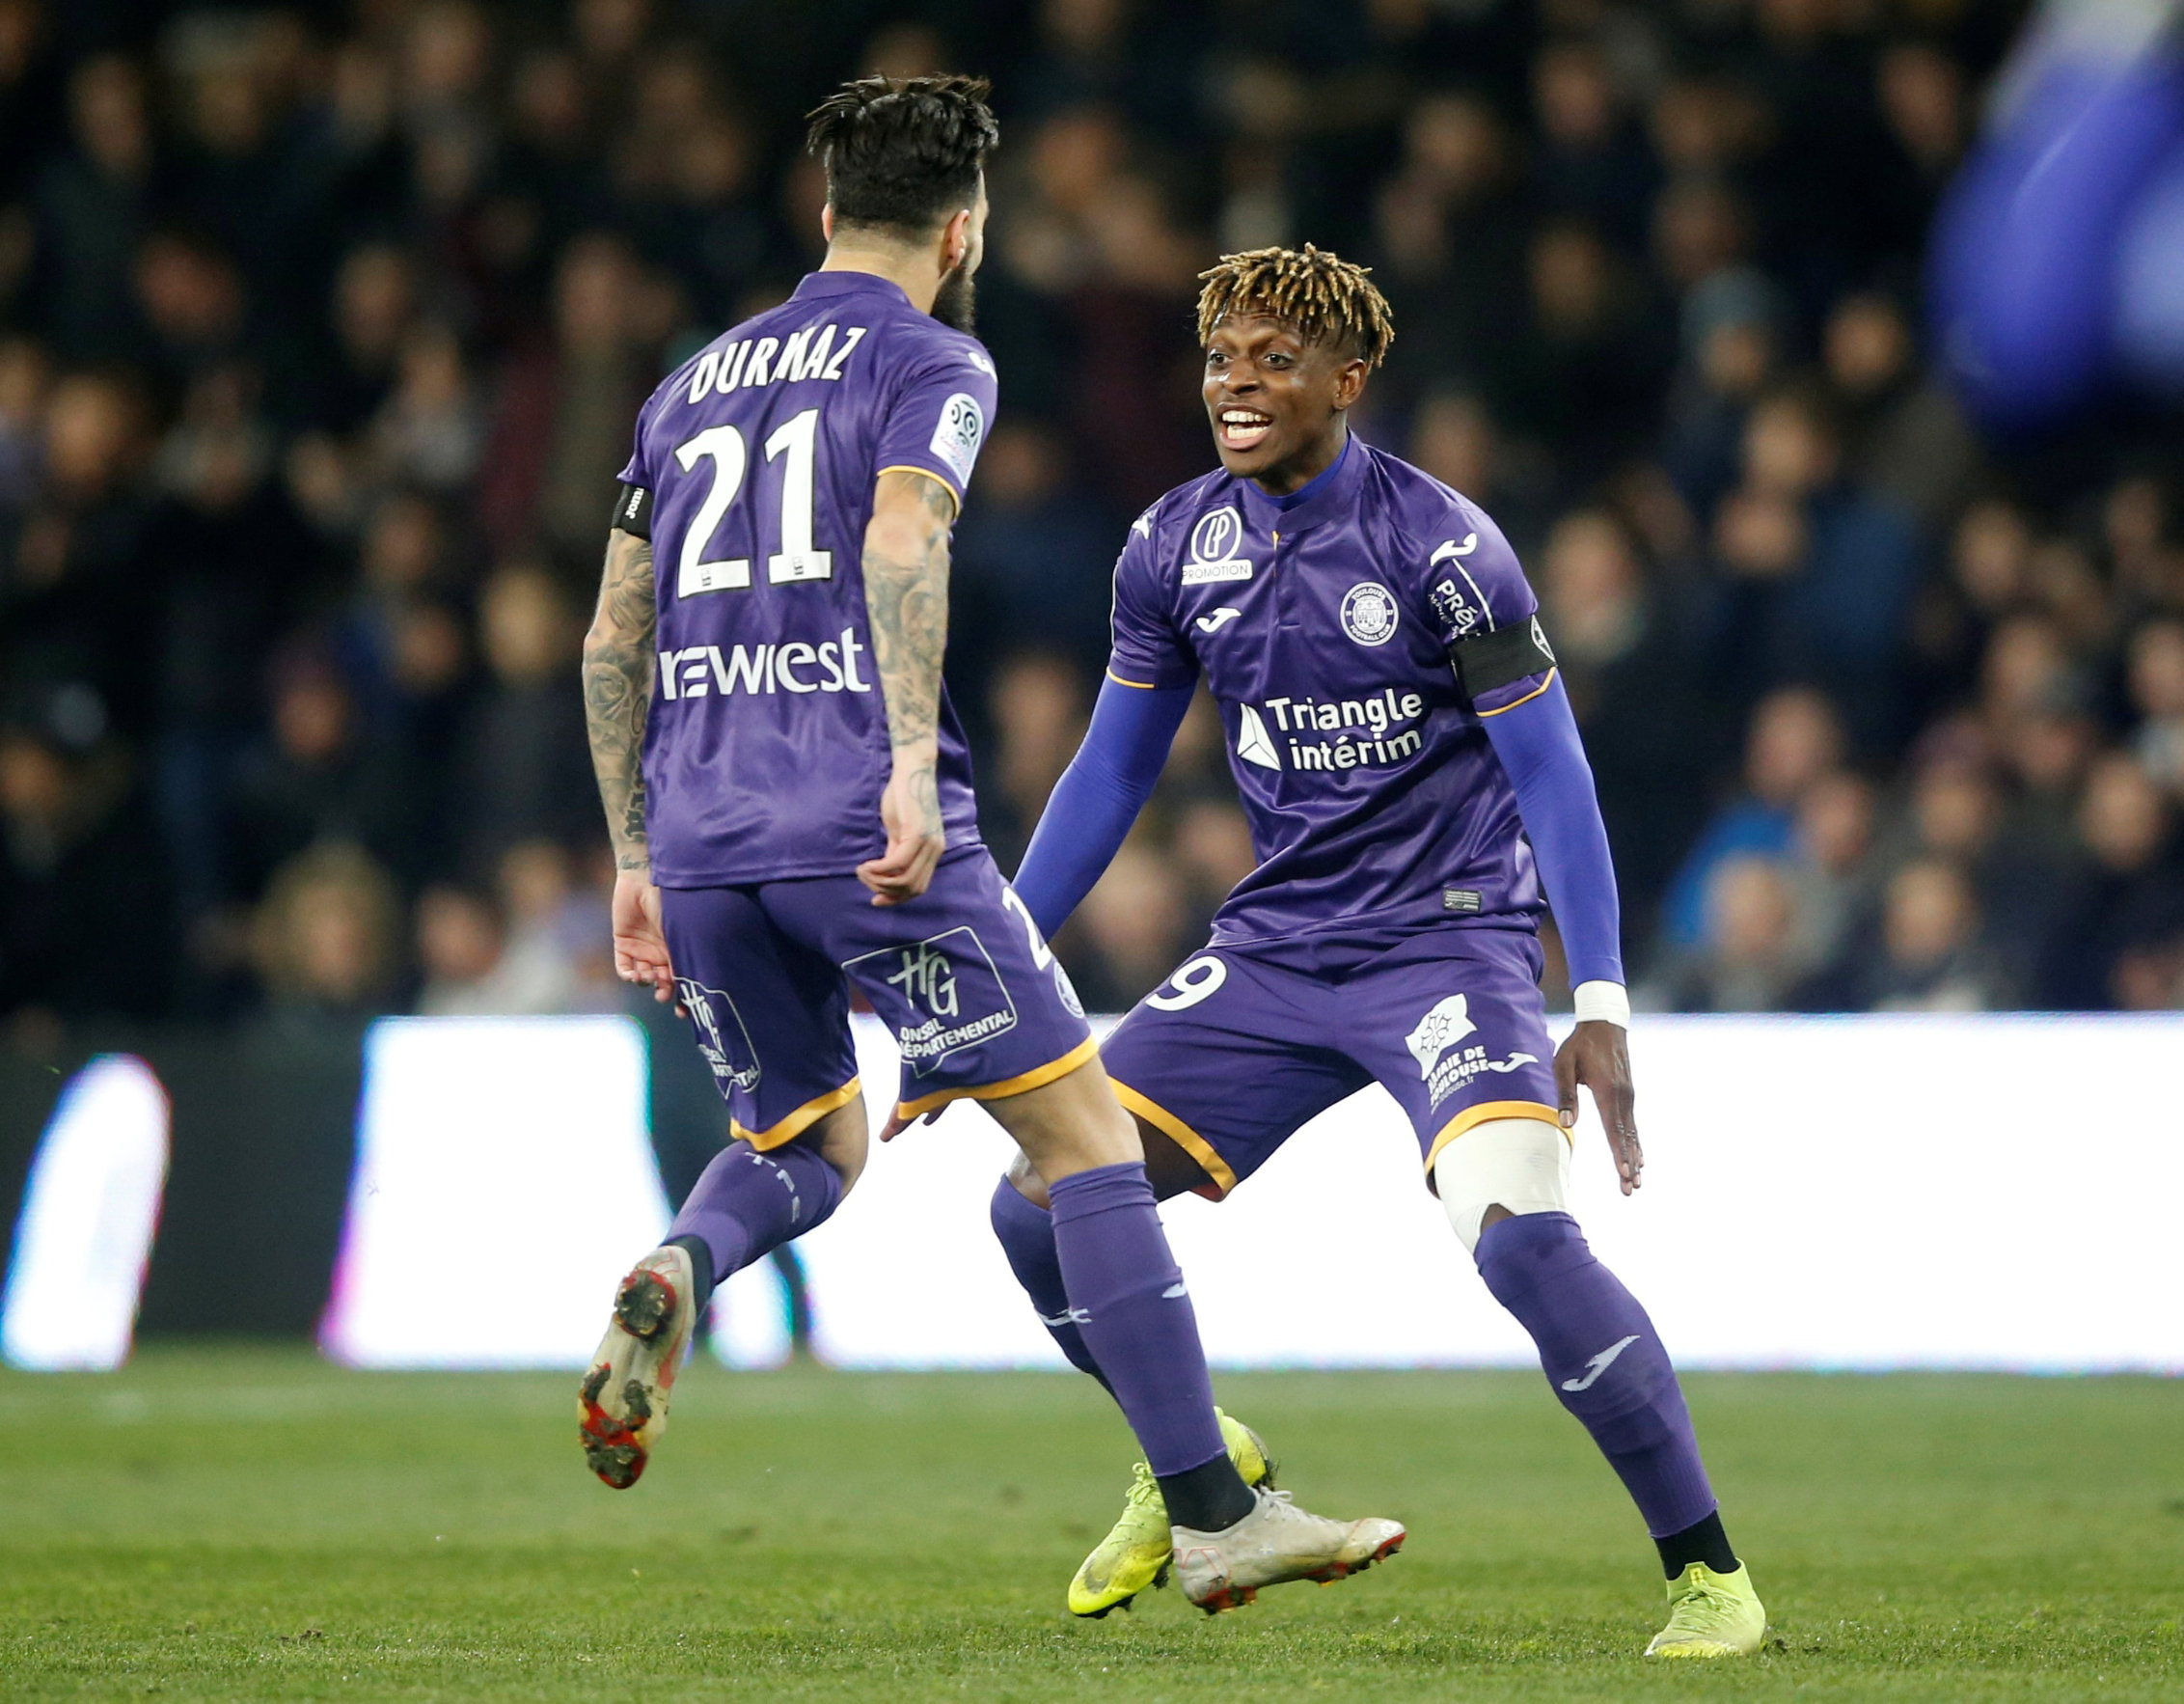 Soccer Football - Ligue 1 - Toulouse v Olympique Lyon - Stadium Municipal de Toulouse, Toulouse, France - January 16, 2019  Toulouse's Jimmy Durmaz celebrates scoring their first goal with Francois Moubandje   REUTERS/Regis Duvignau